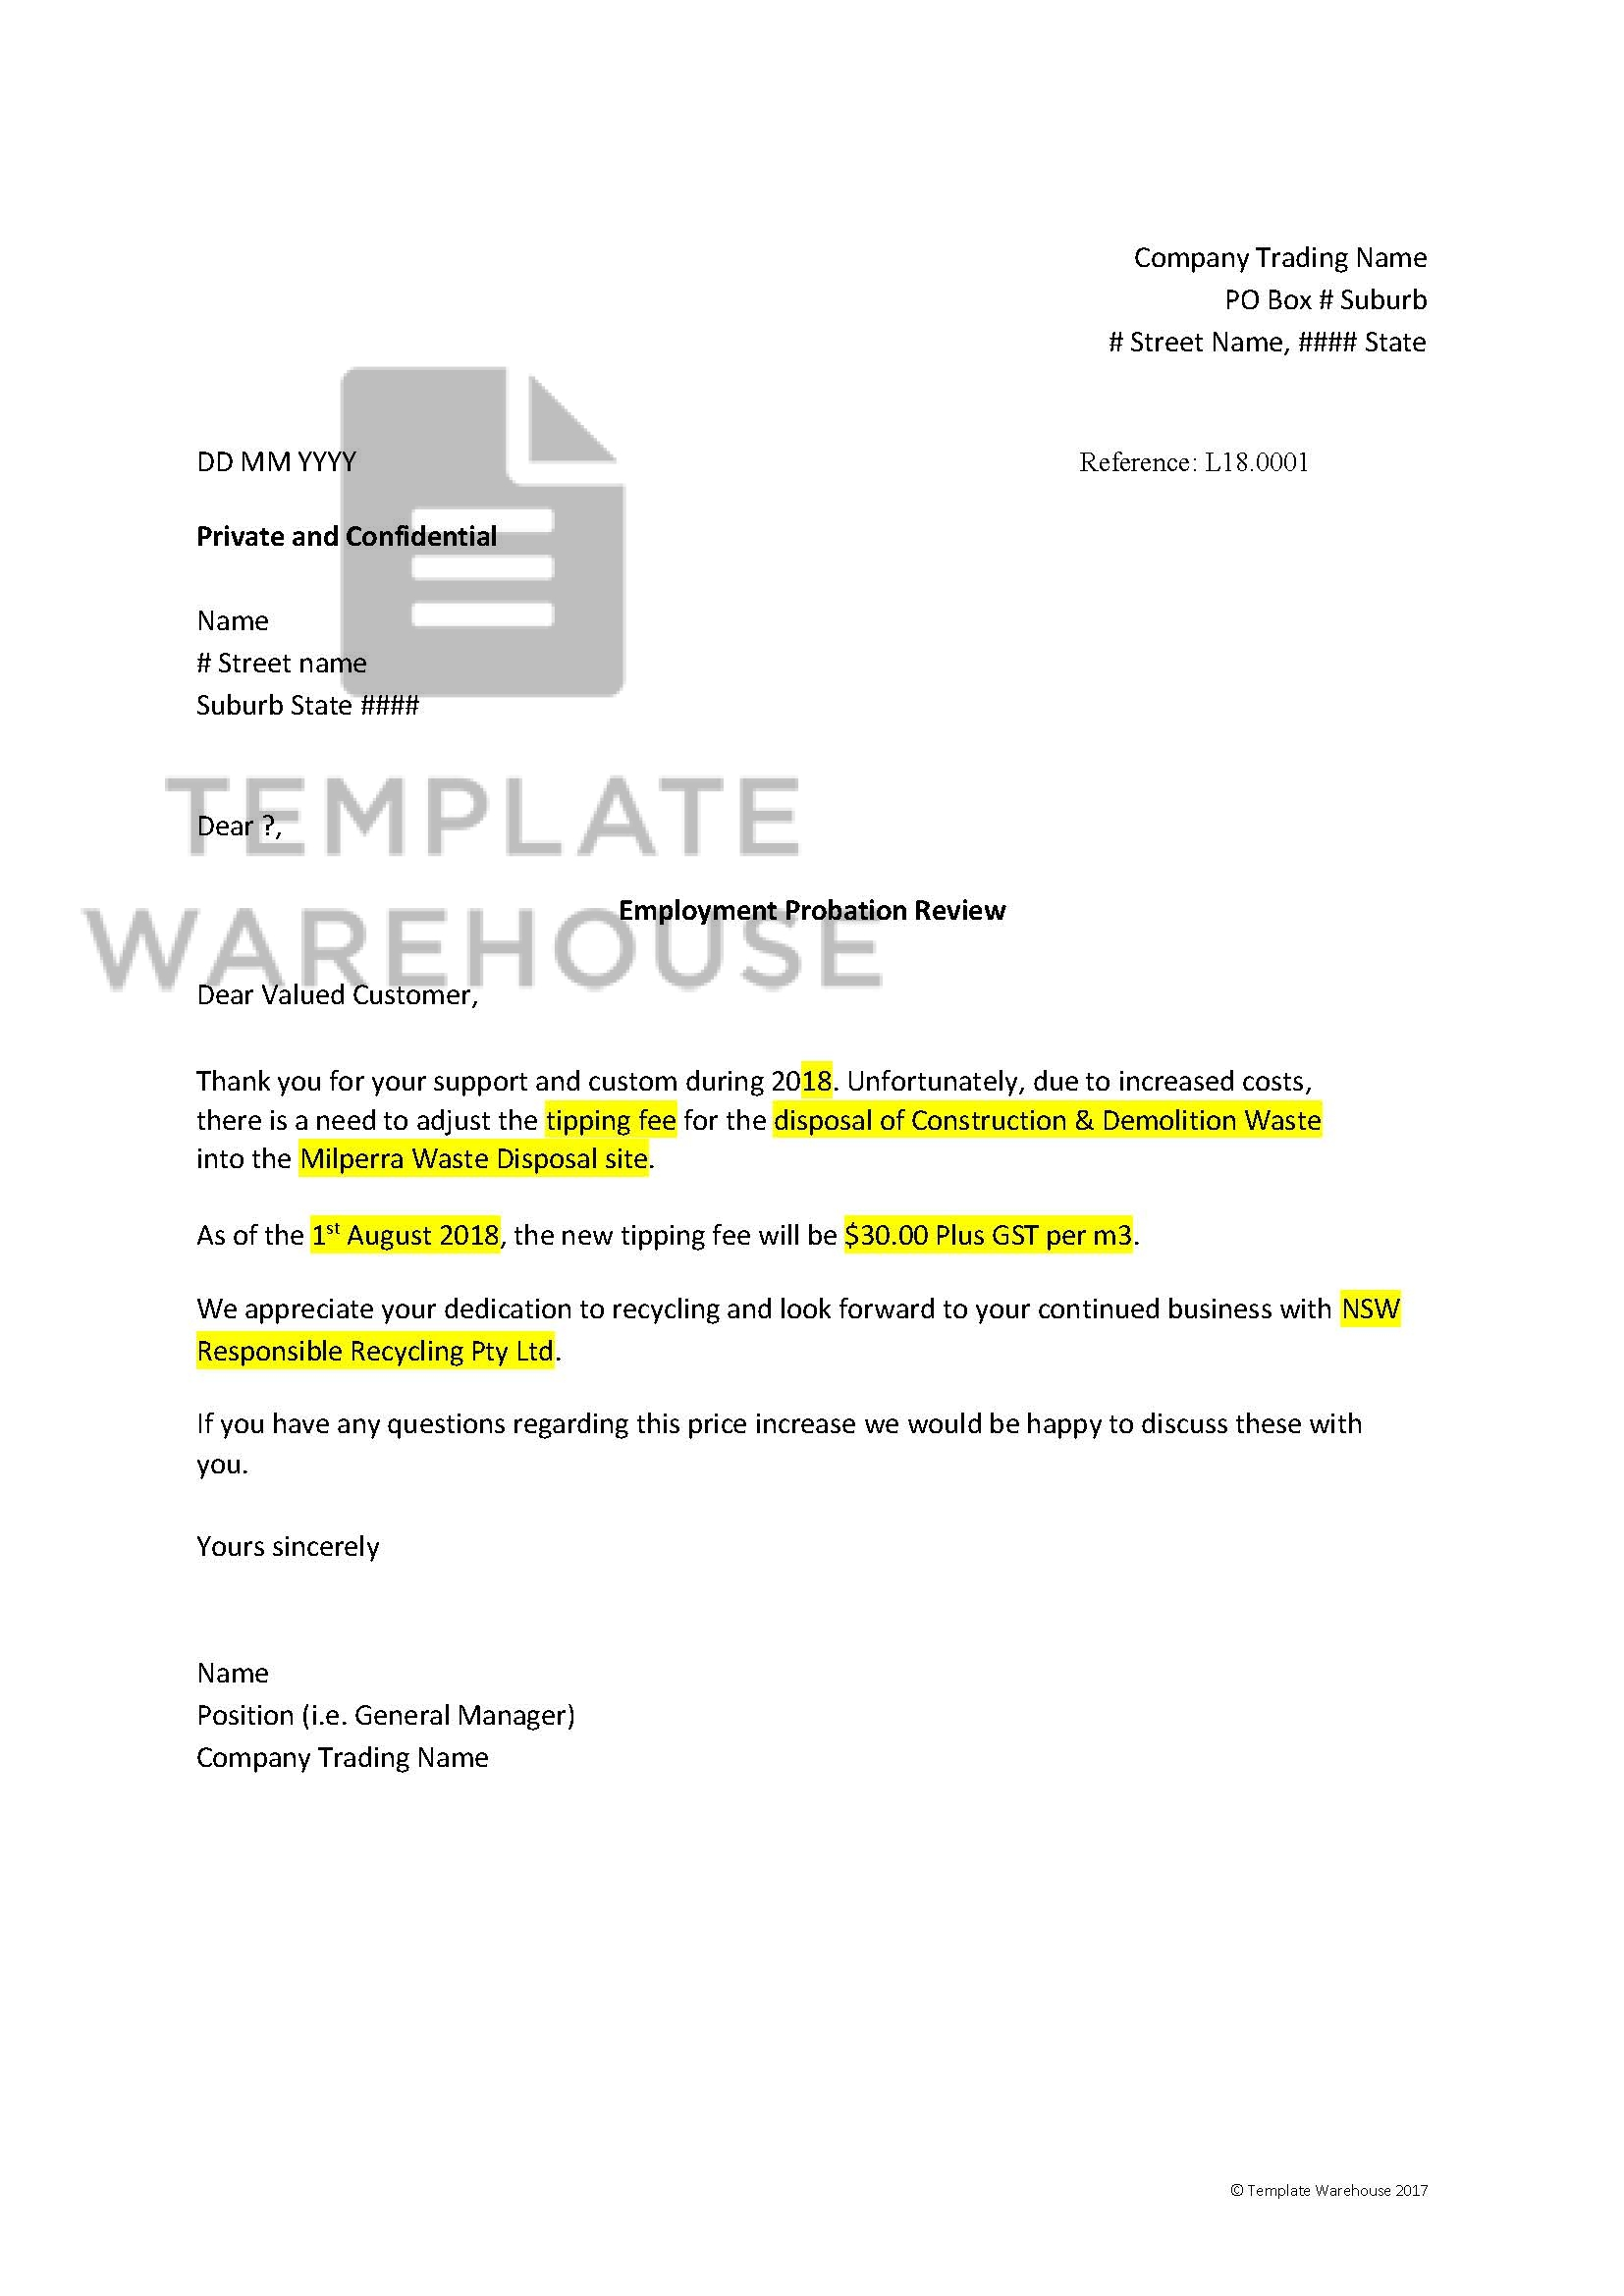 Afm 04 001 Notification Of Price Increase Template Warehouse